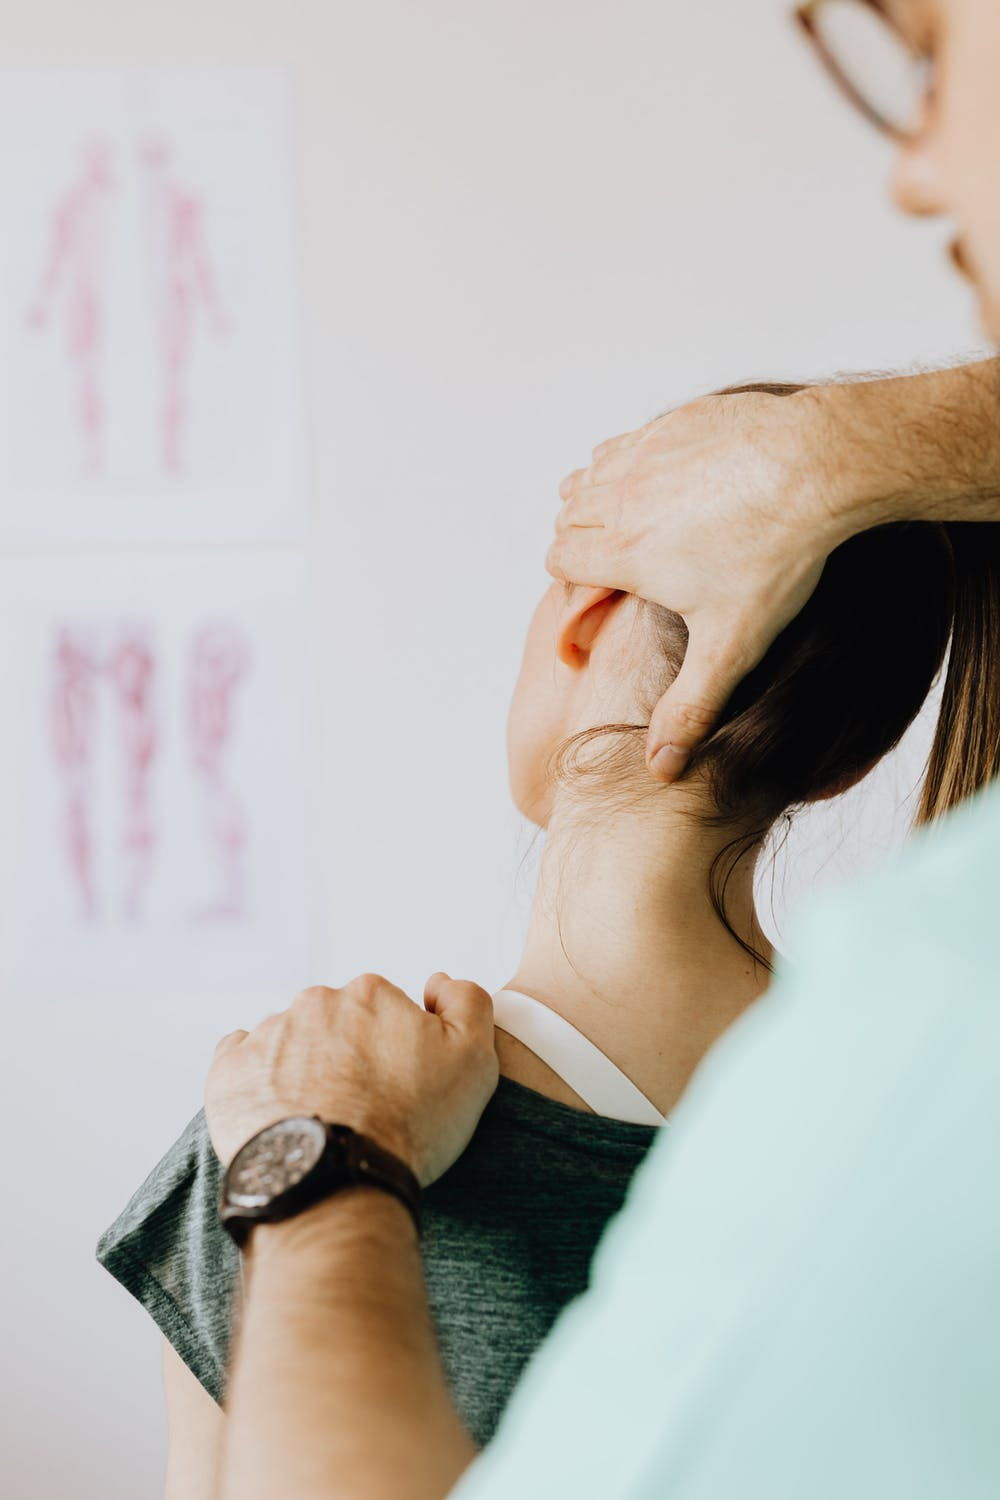 Can chiropractic care resolve indigestion and gastrointestinal problems